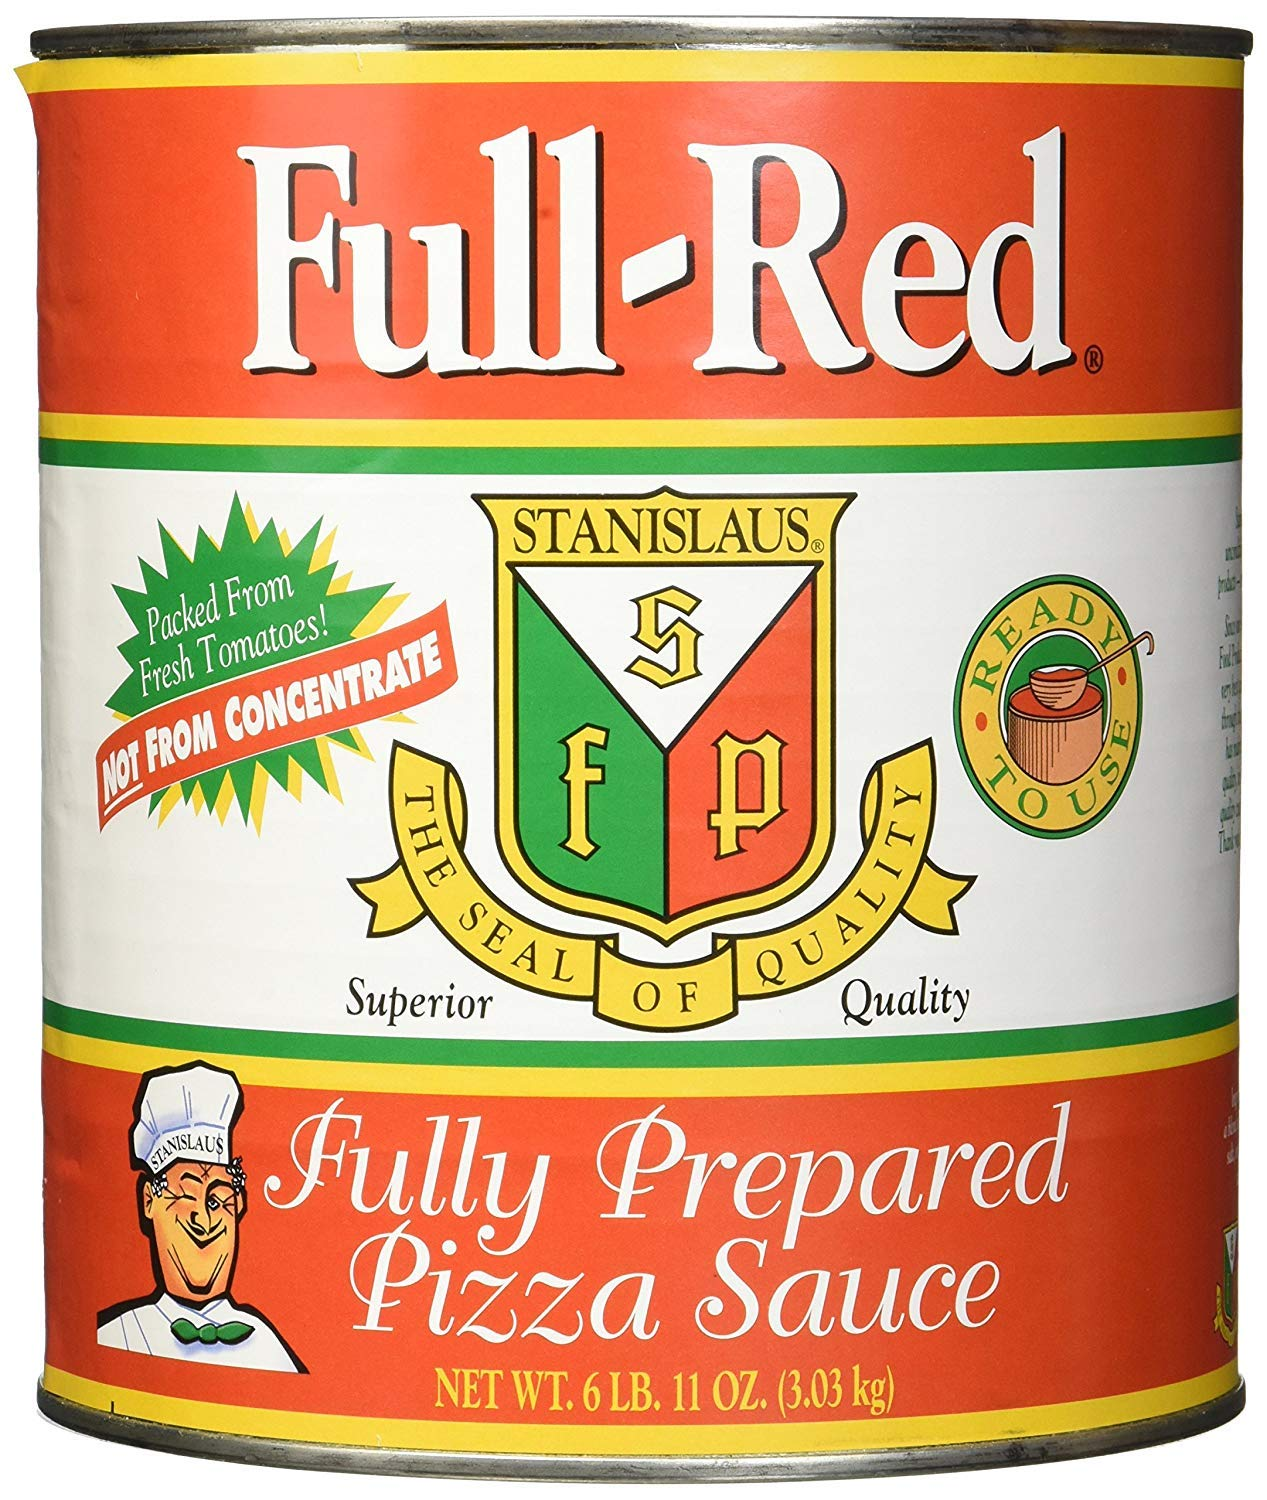 Full Red Pizza Sauce review